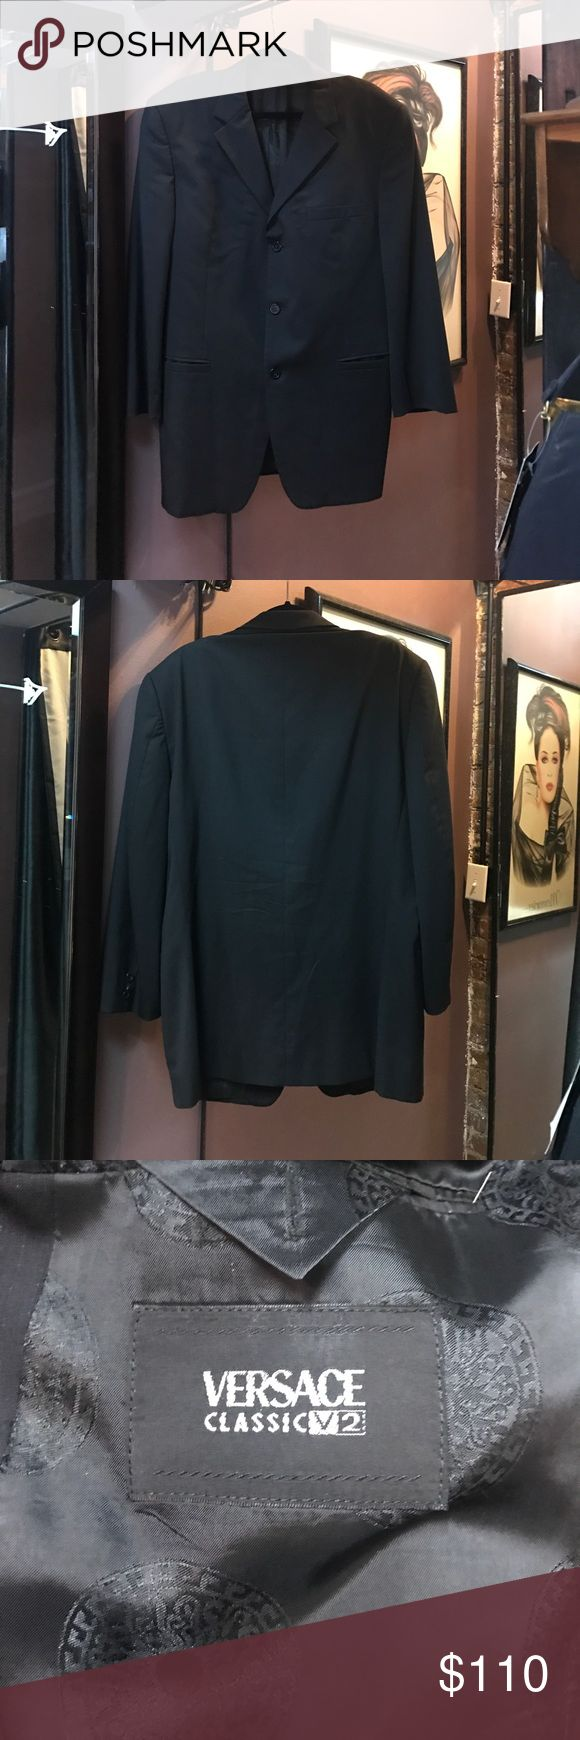 Versace Classic V2 black wool suit jacket Versace Classic V2 black wool suit jacket. Amazing vintage condition. Only flaw is about an inch of stitch on lining is a bit loose. Not torn though. And one of the cuff buttons is broken. An easy fix. An iconic vintage piece. It was custom made so no size but I believe it's 44S. Please enquirer about measurements! Versace Suits & Blazers Sport Coats & Blazers